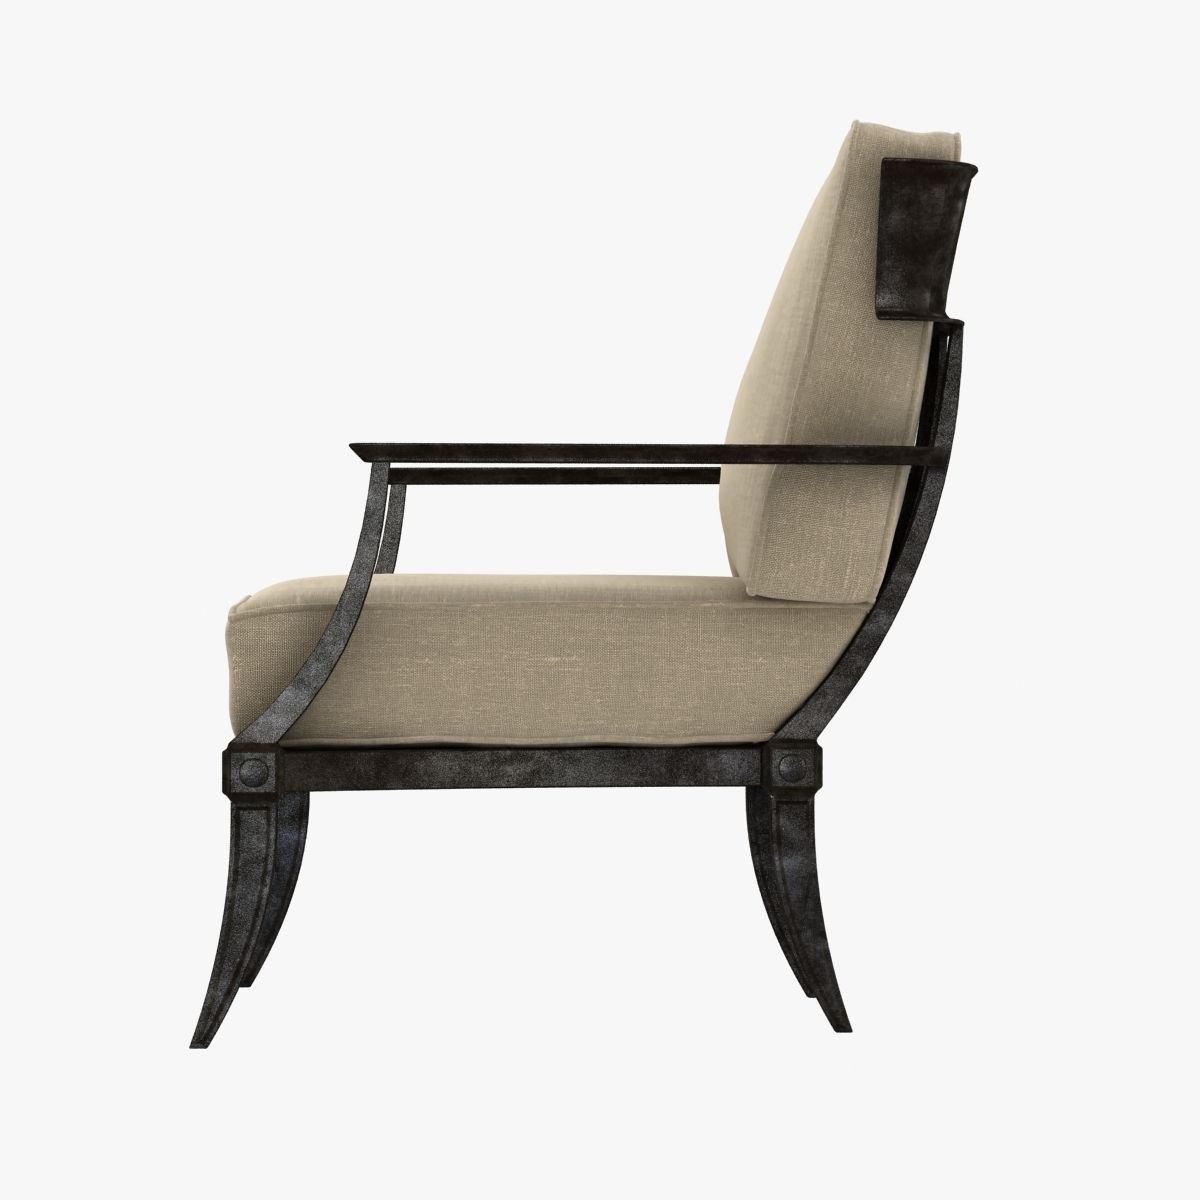 Restoration Hardware KLISMOS CLASSIC LOUNG... 3D Model ...